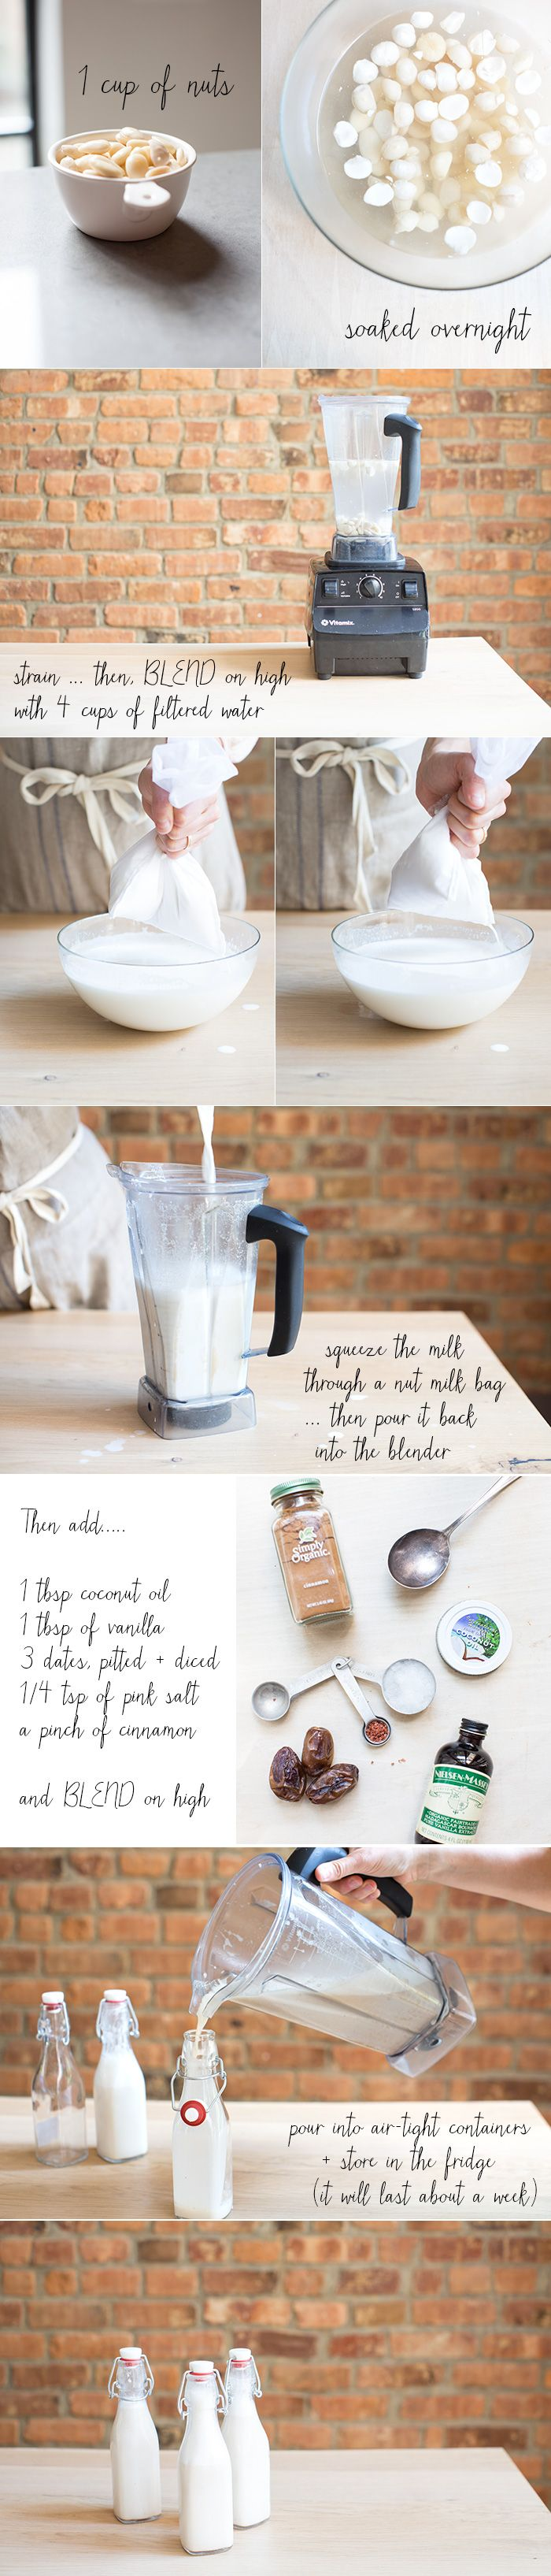 how to make the most delicious nut milk | a step by step guide with pictures! …… via: what's cooking good looking